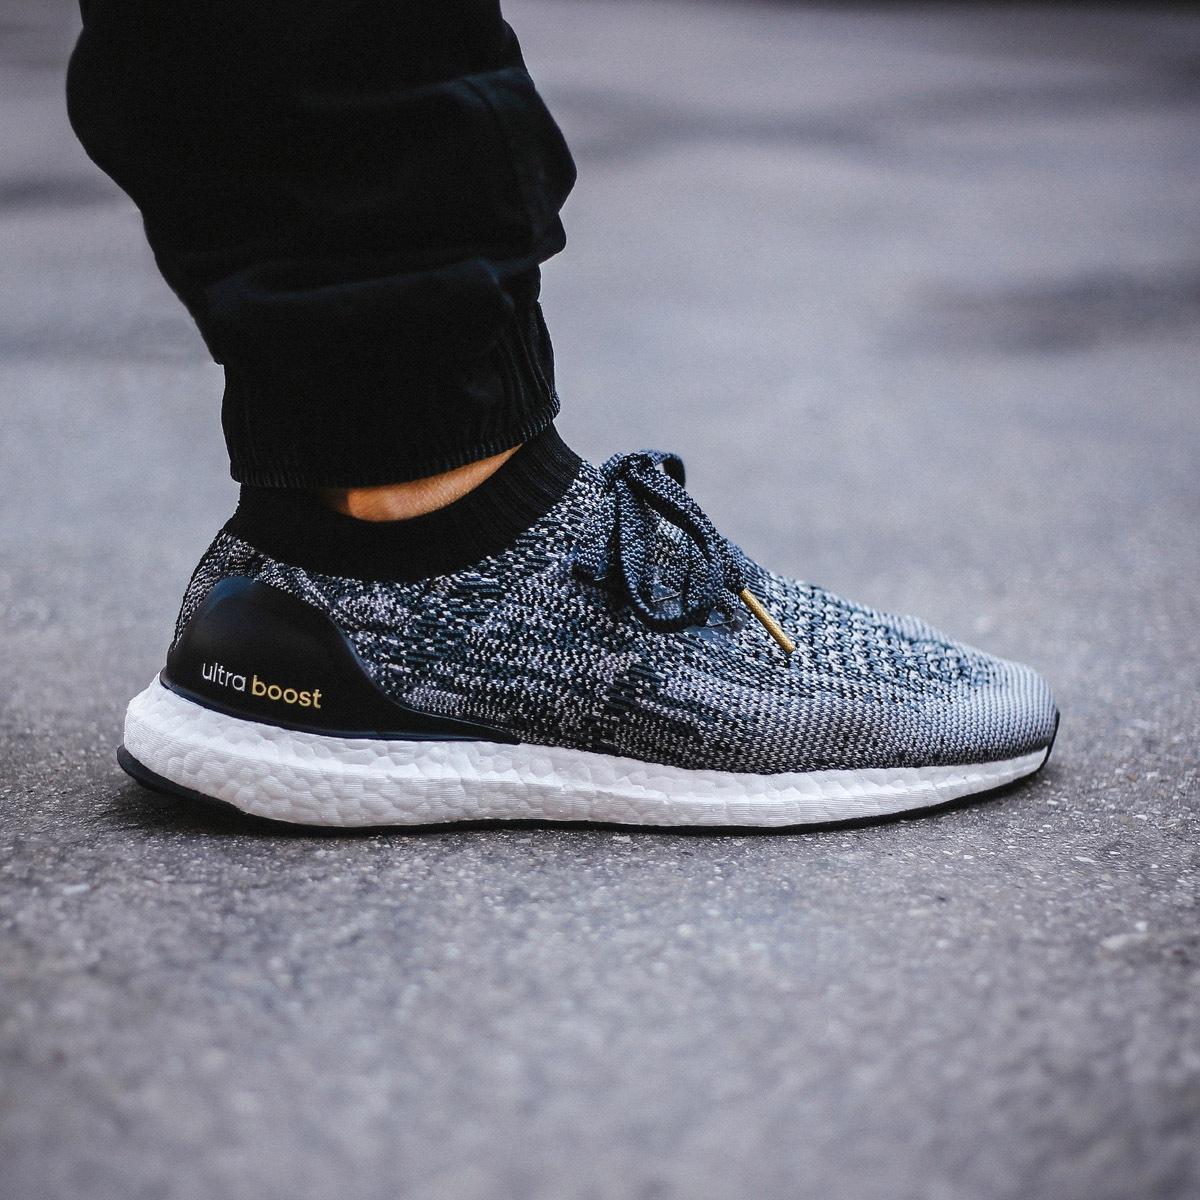 Adidas Ultra Boost Uncaged On Feet Pics Via Bstn Dead